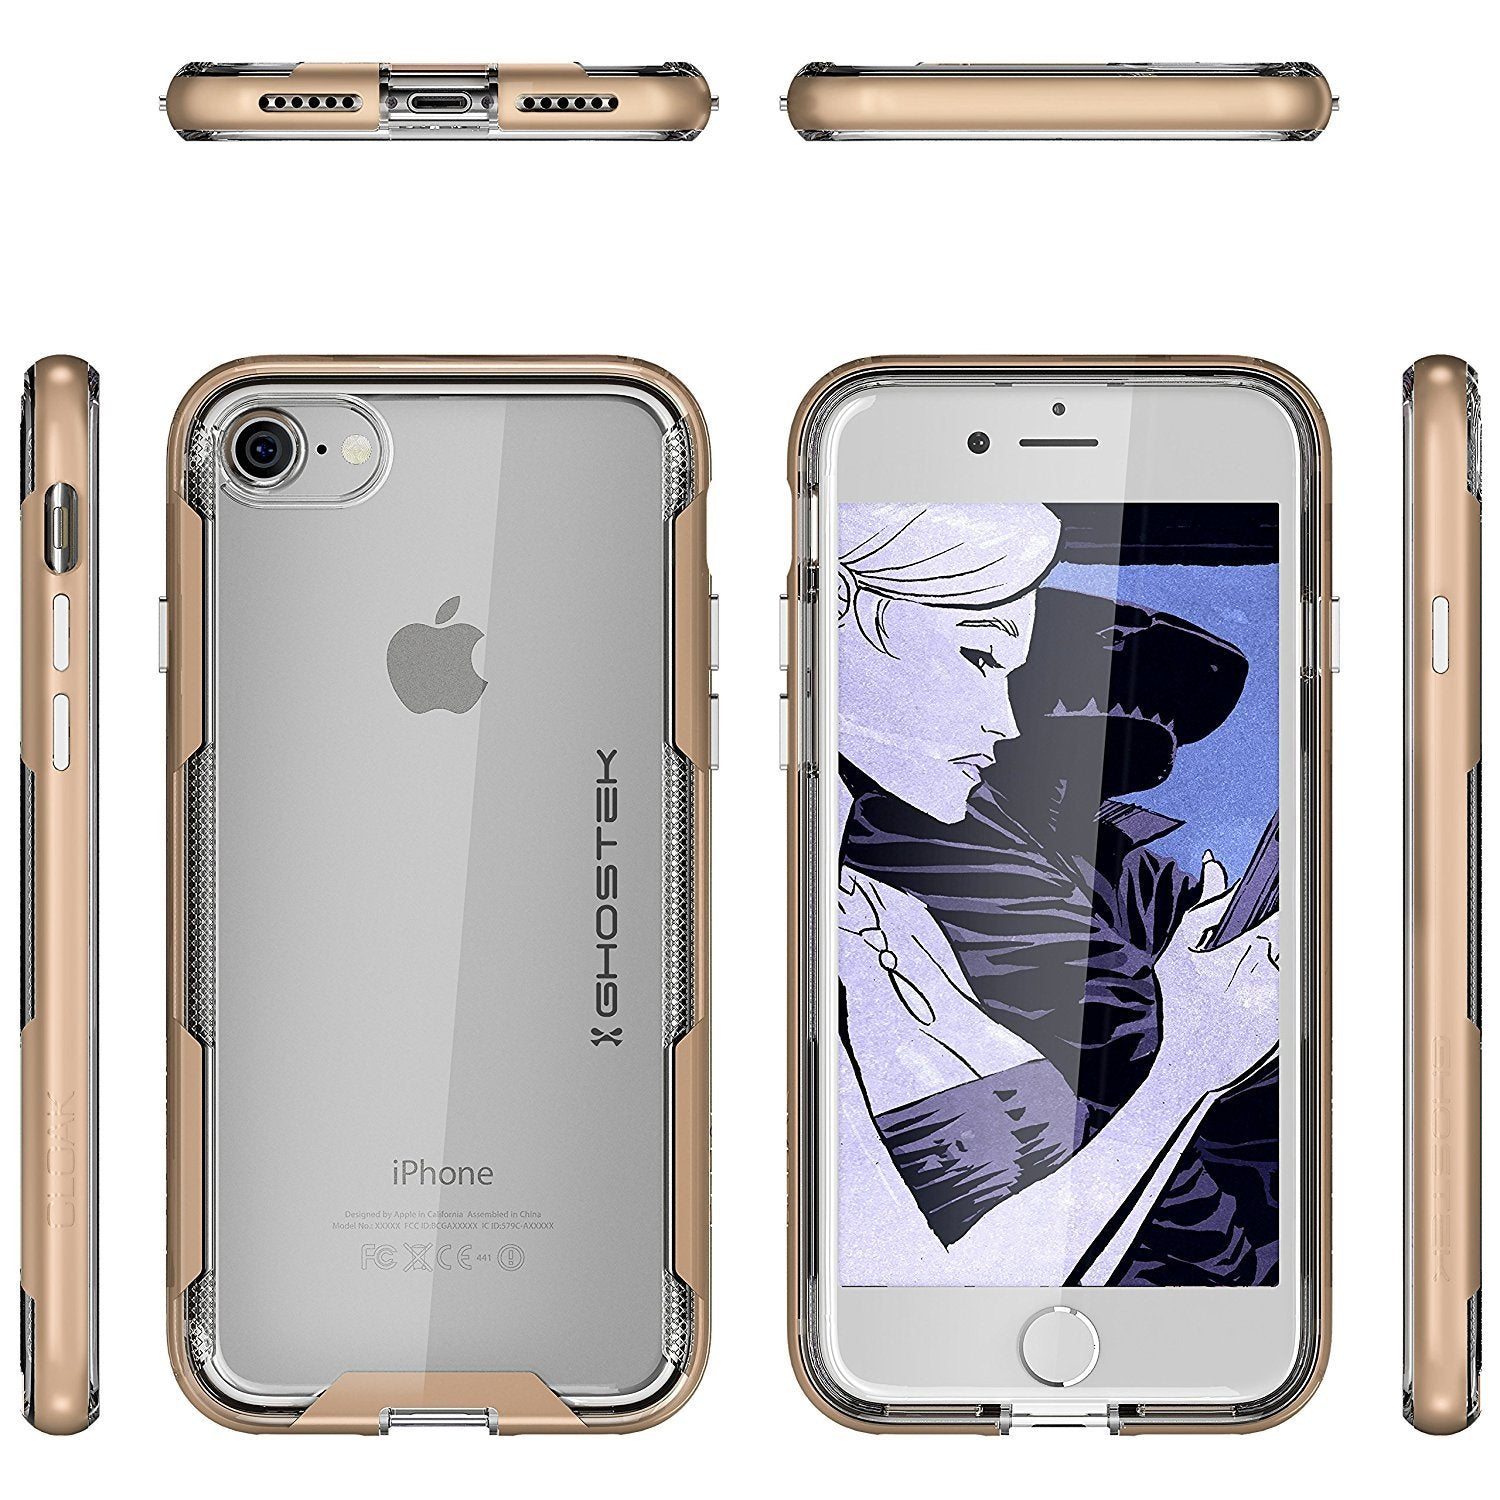 iPhone 7 Case, Ghostek Cloak 3 Series for iPhone 7 Clear Protective Case | Gold